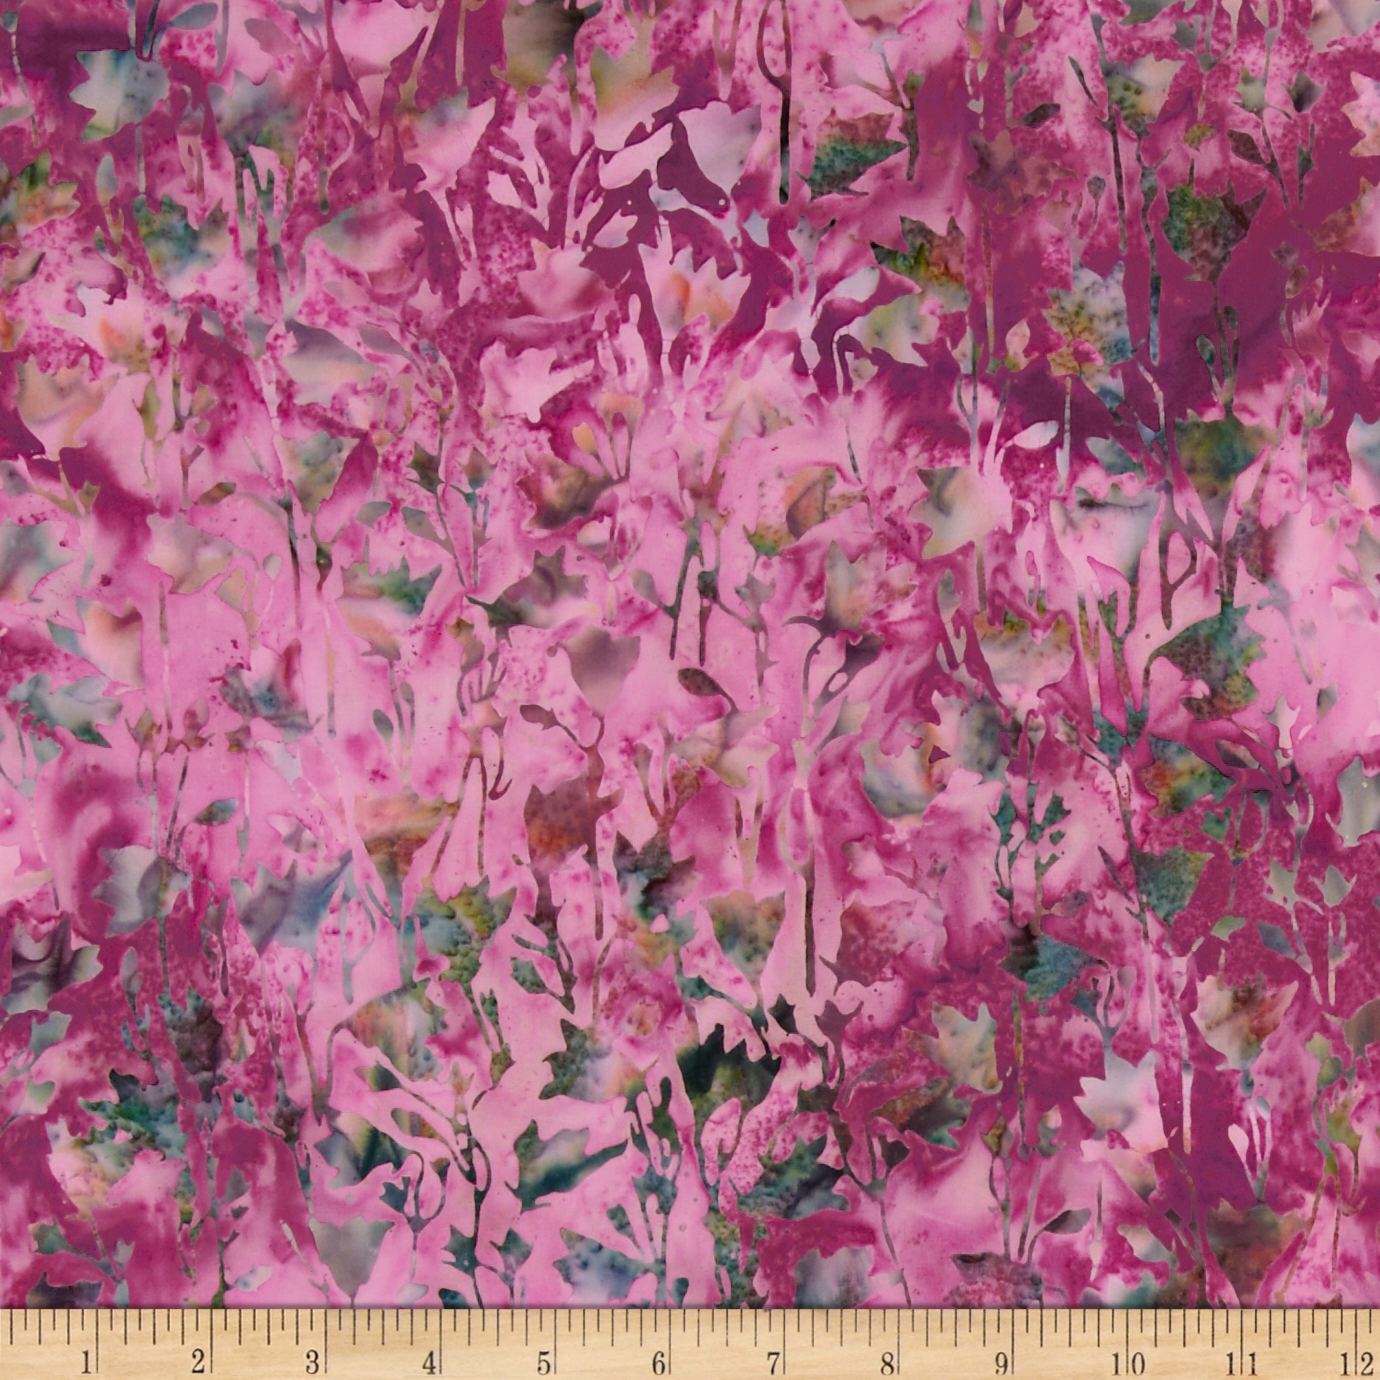 Bali Batiks Handpaints Pressed Flowers Primrose Fabric